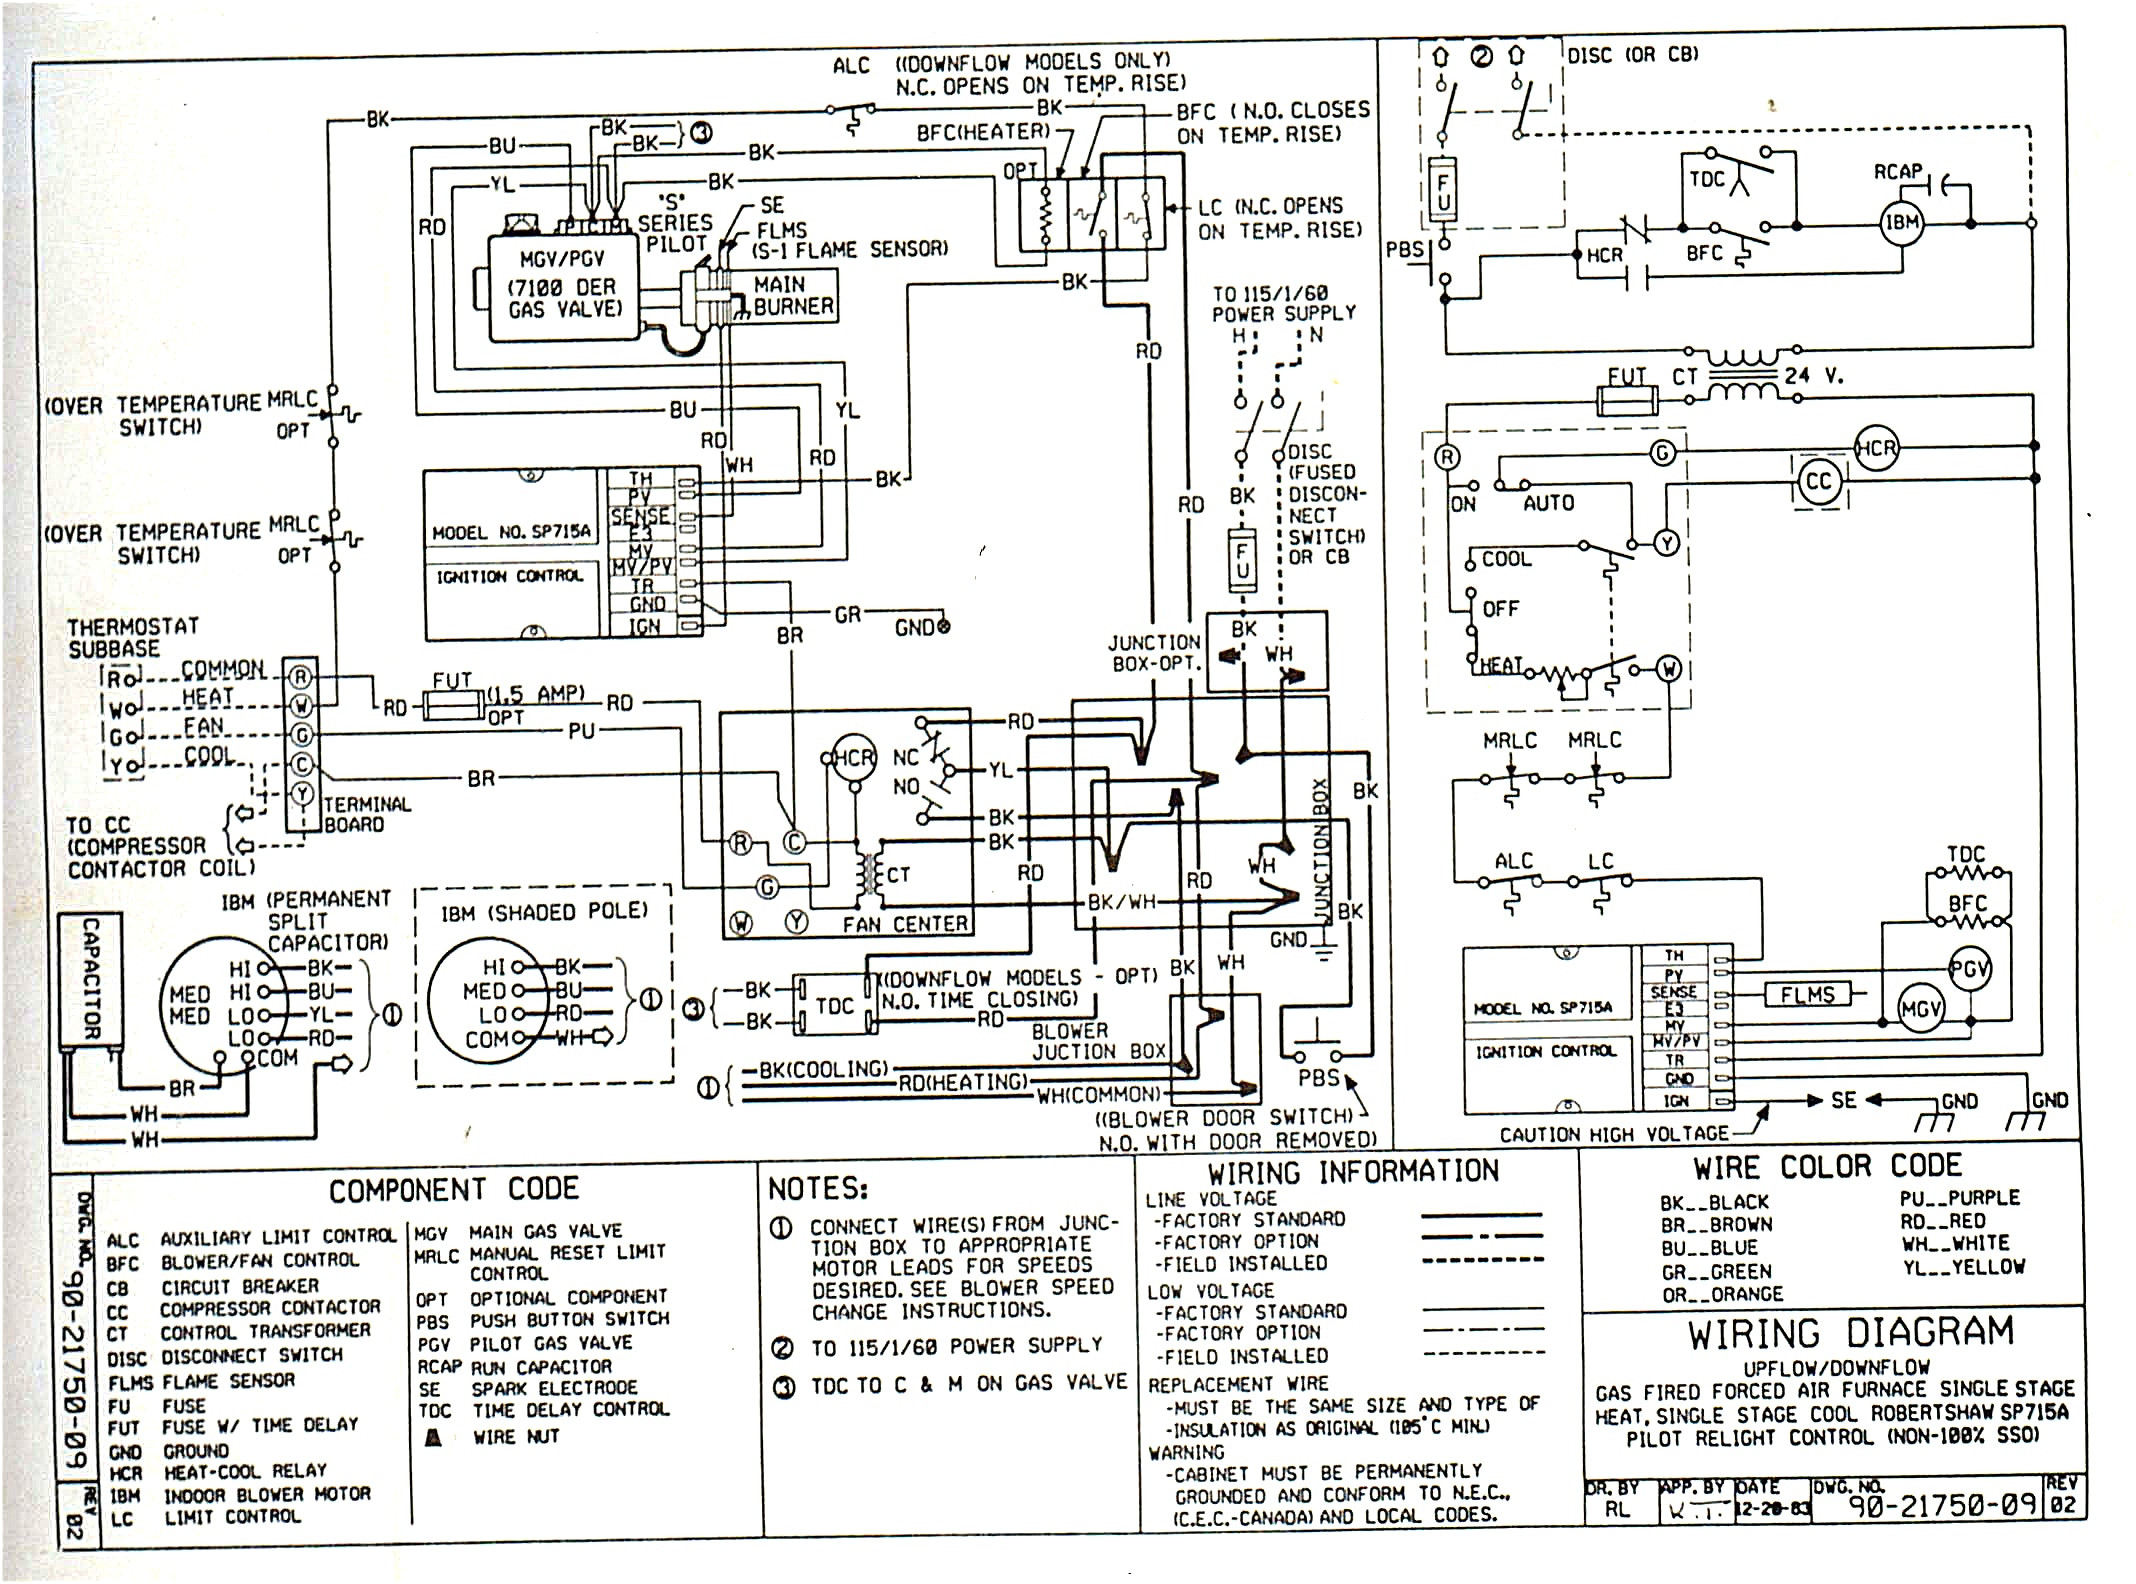 medium resolution of vermeer wiring diagram auto electrical wiring diagram icm7216c28pindip controlcircuit circuit diagram seekiccom